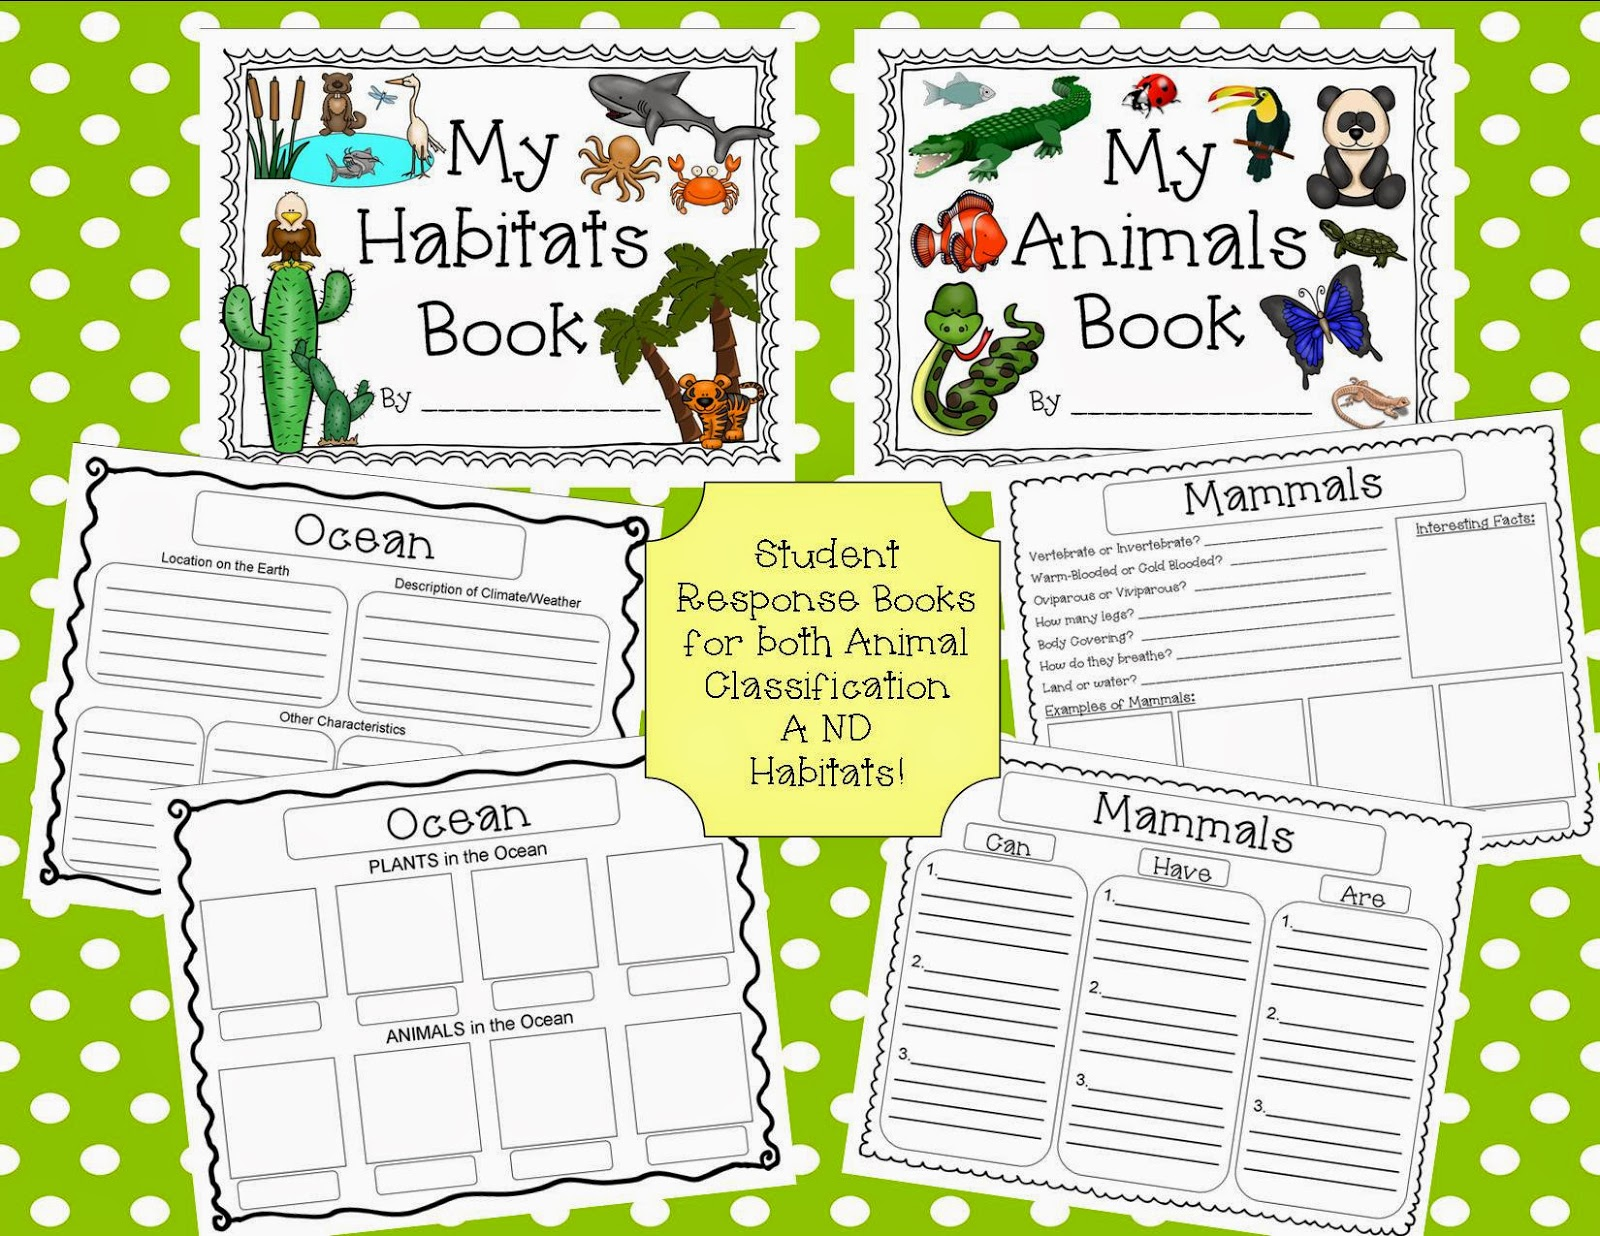 http://www.teacherspayteachers.com/Product/Animal-Classification-Habitat-Unit-With-Student-RecordingResponse-Booklets-1210136